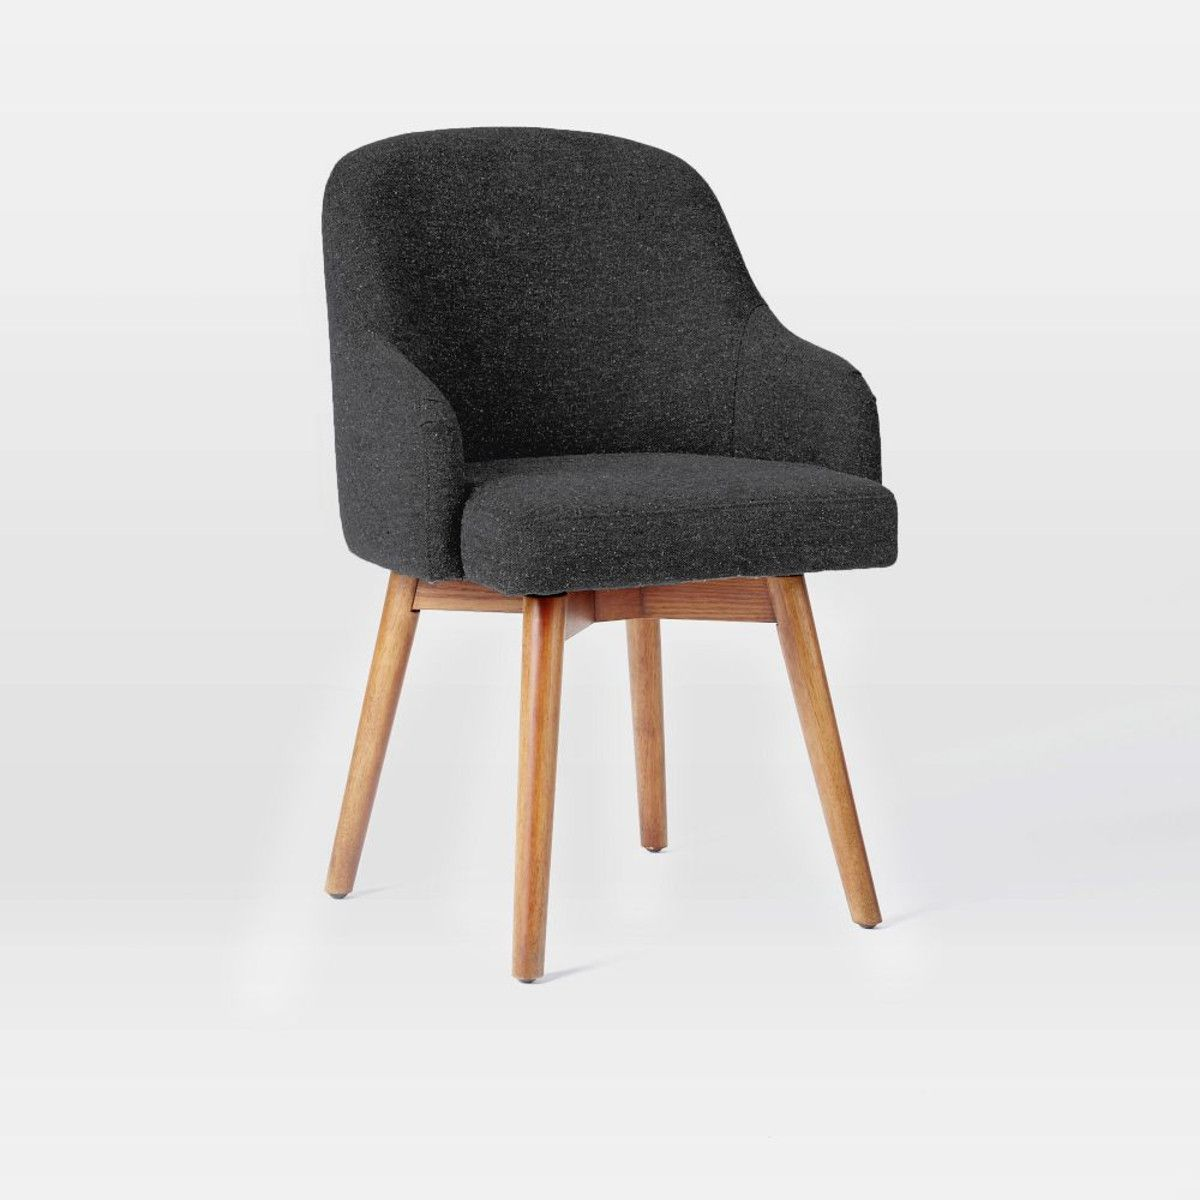 saddle office chair. A Nod To Mid-century Design, Our Swivel-seated Saddle Office Chair Is Updated With Modern Form Add Level Of Comfort Classic, Clean Aesthetic. O